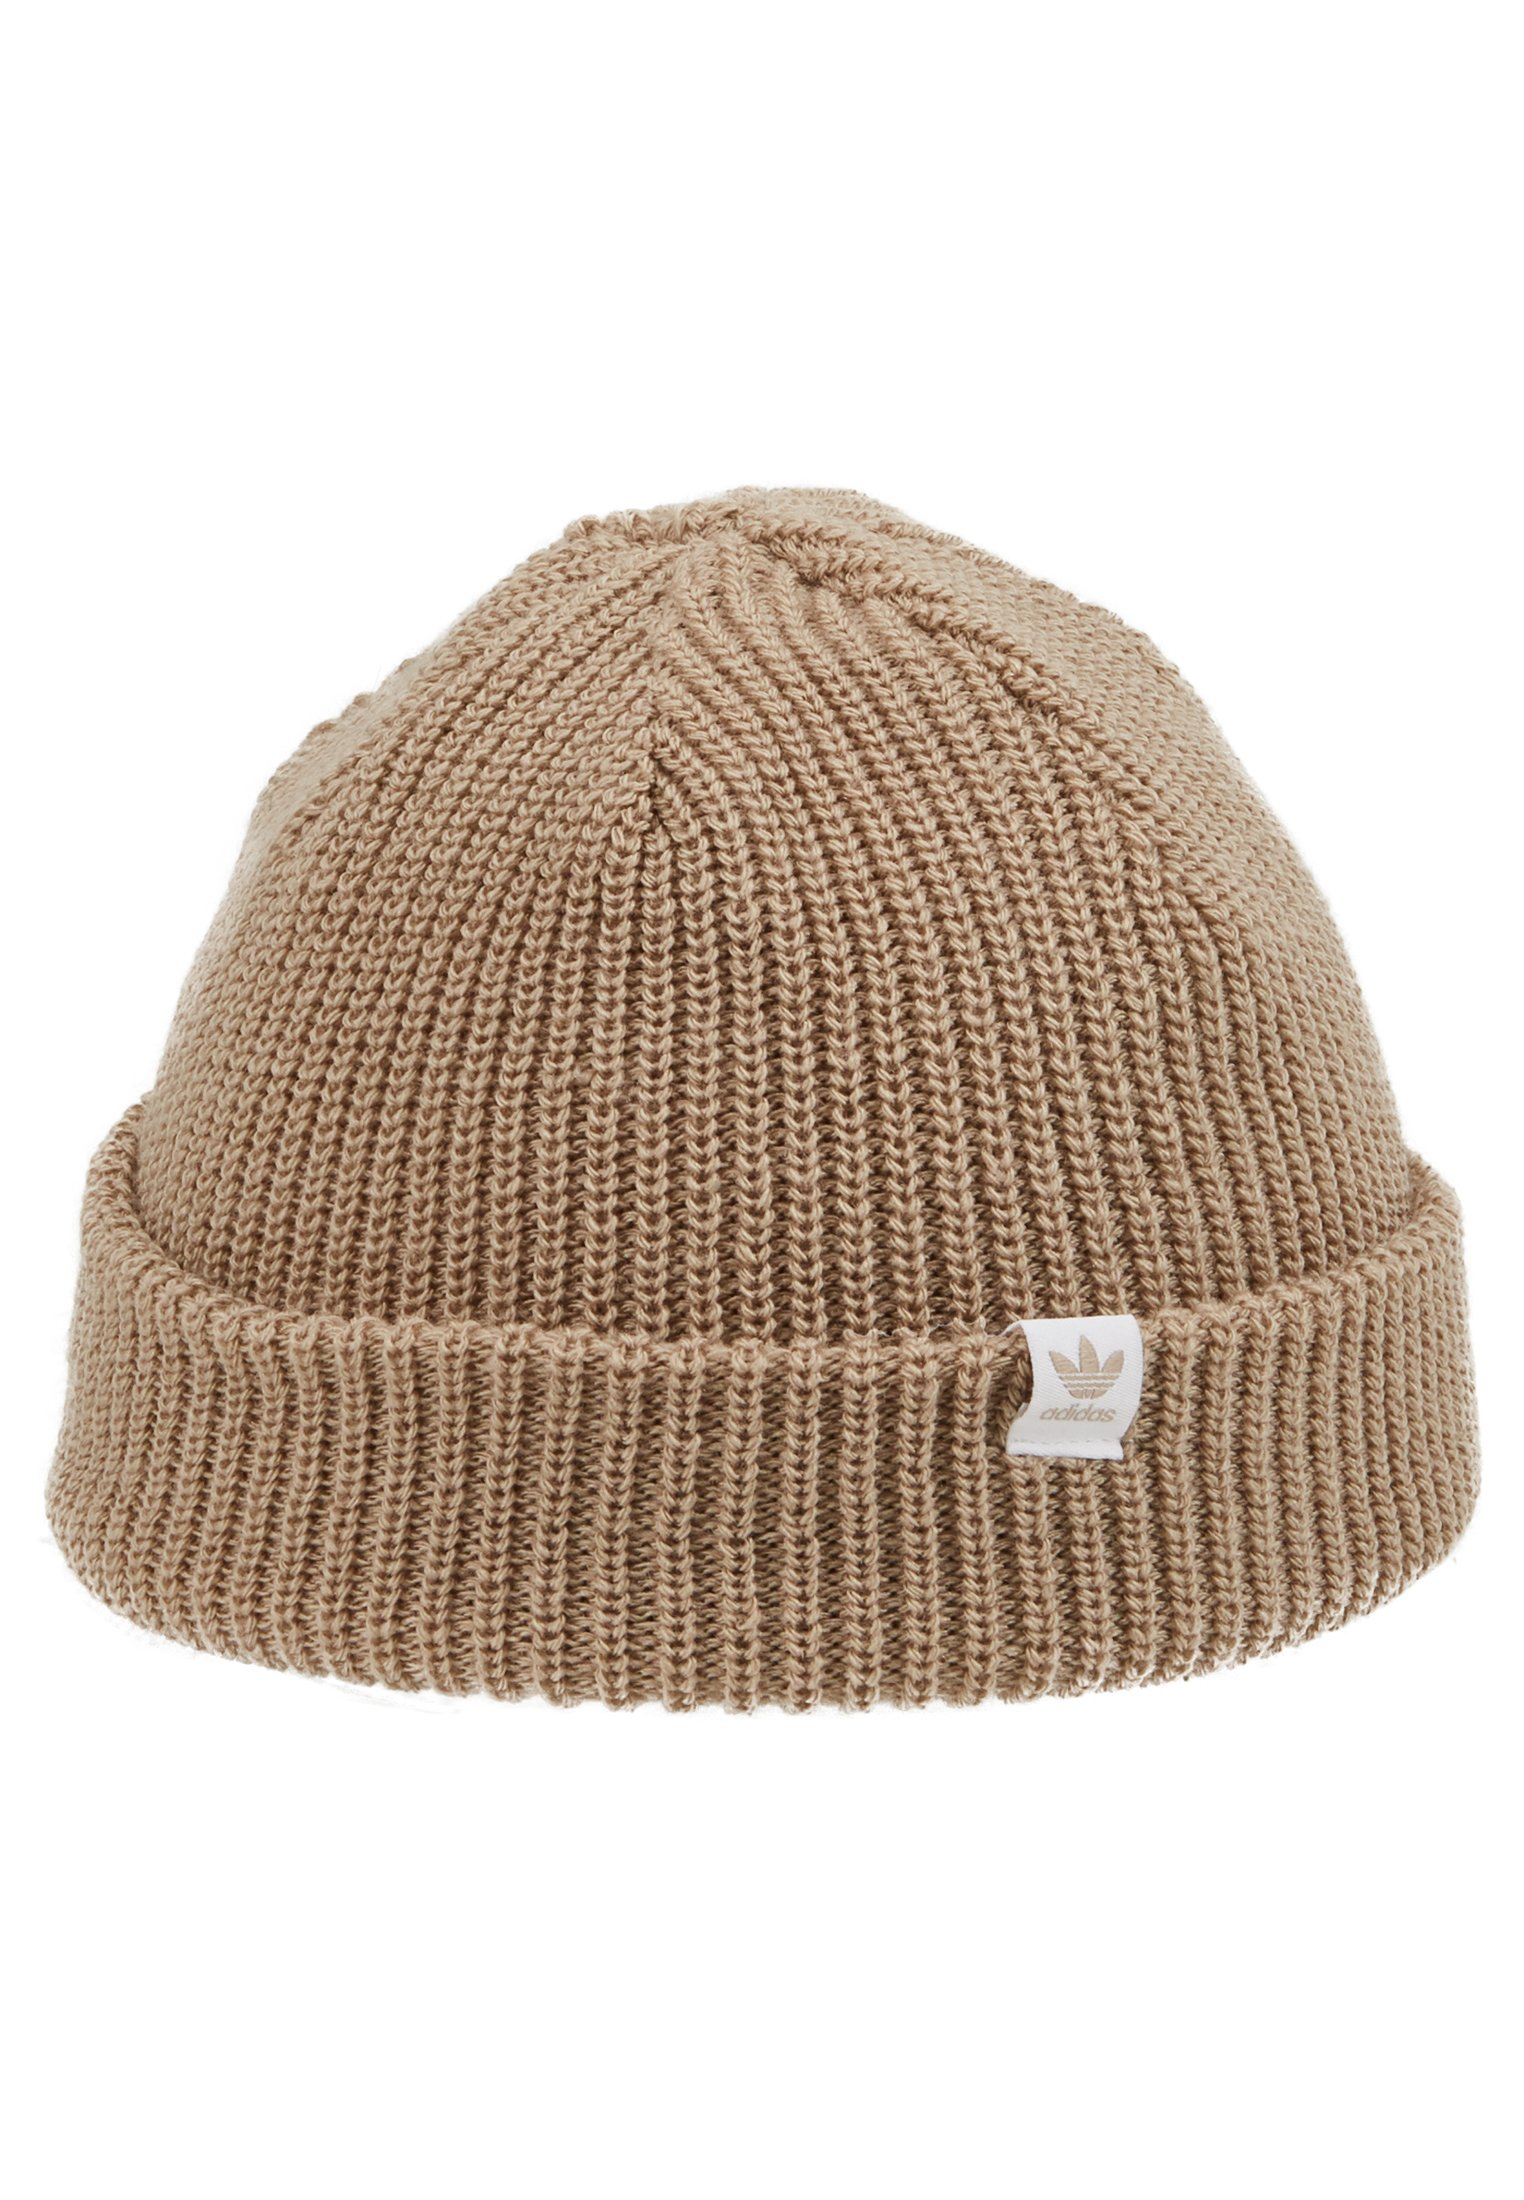 Adidas Originals Shorty Beanie - Mütze Conavy/white/dunkelblau